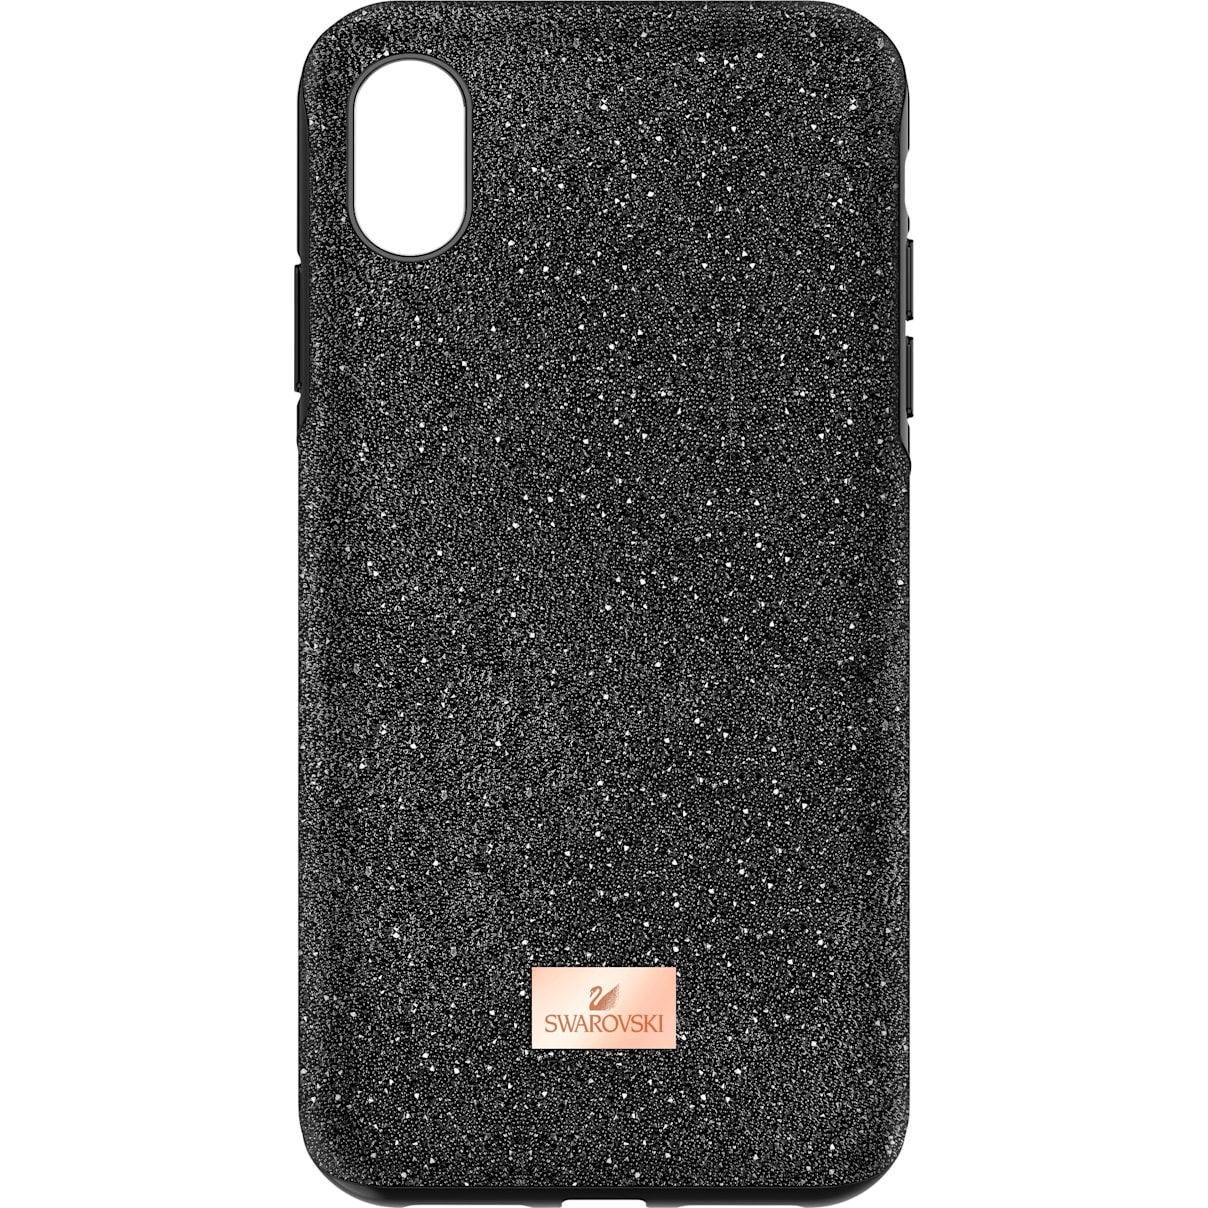 Swarovski High Smartphone Case with Bumper, iPhone® XR, Black